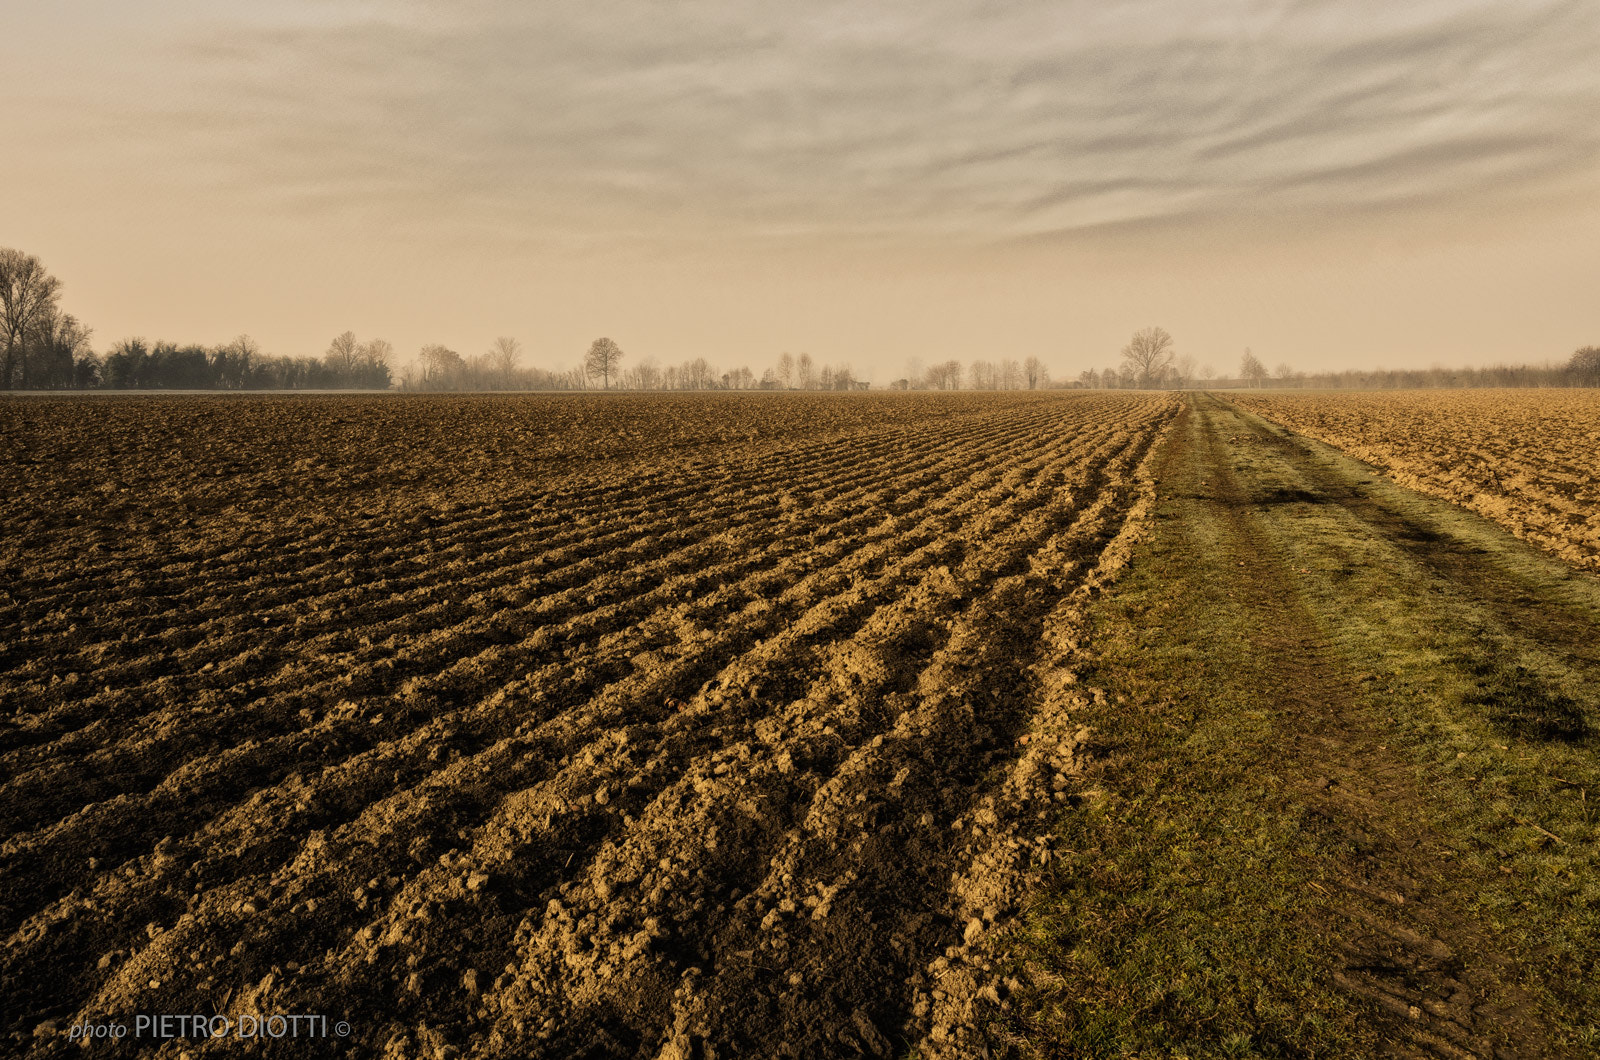 Photograph Plain 3, winter, Cremona, Italy. by Pietro Diotti on 500px